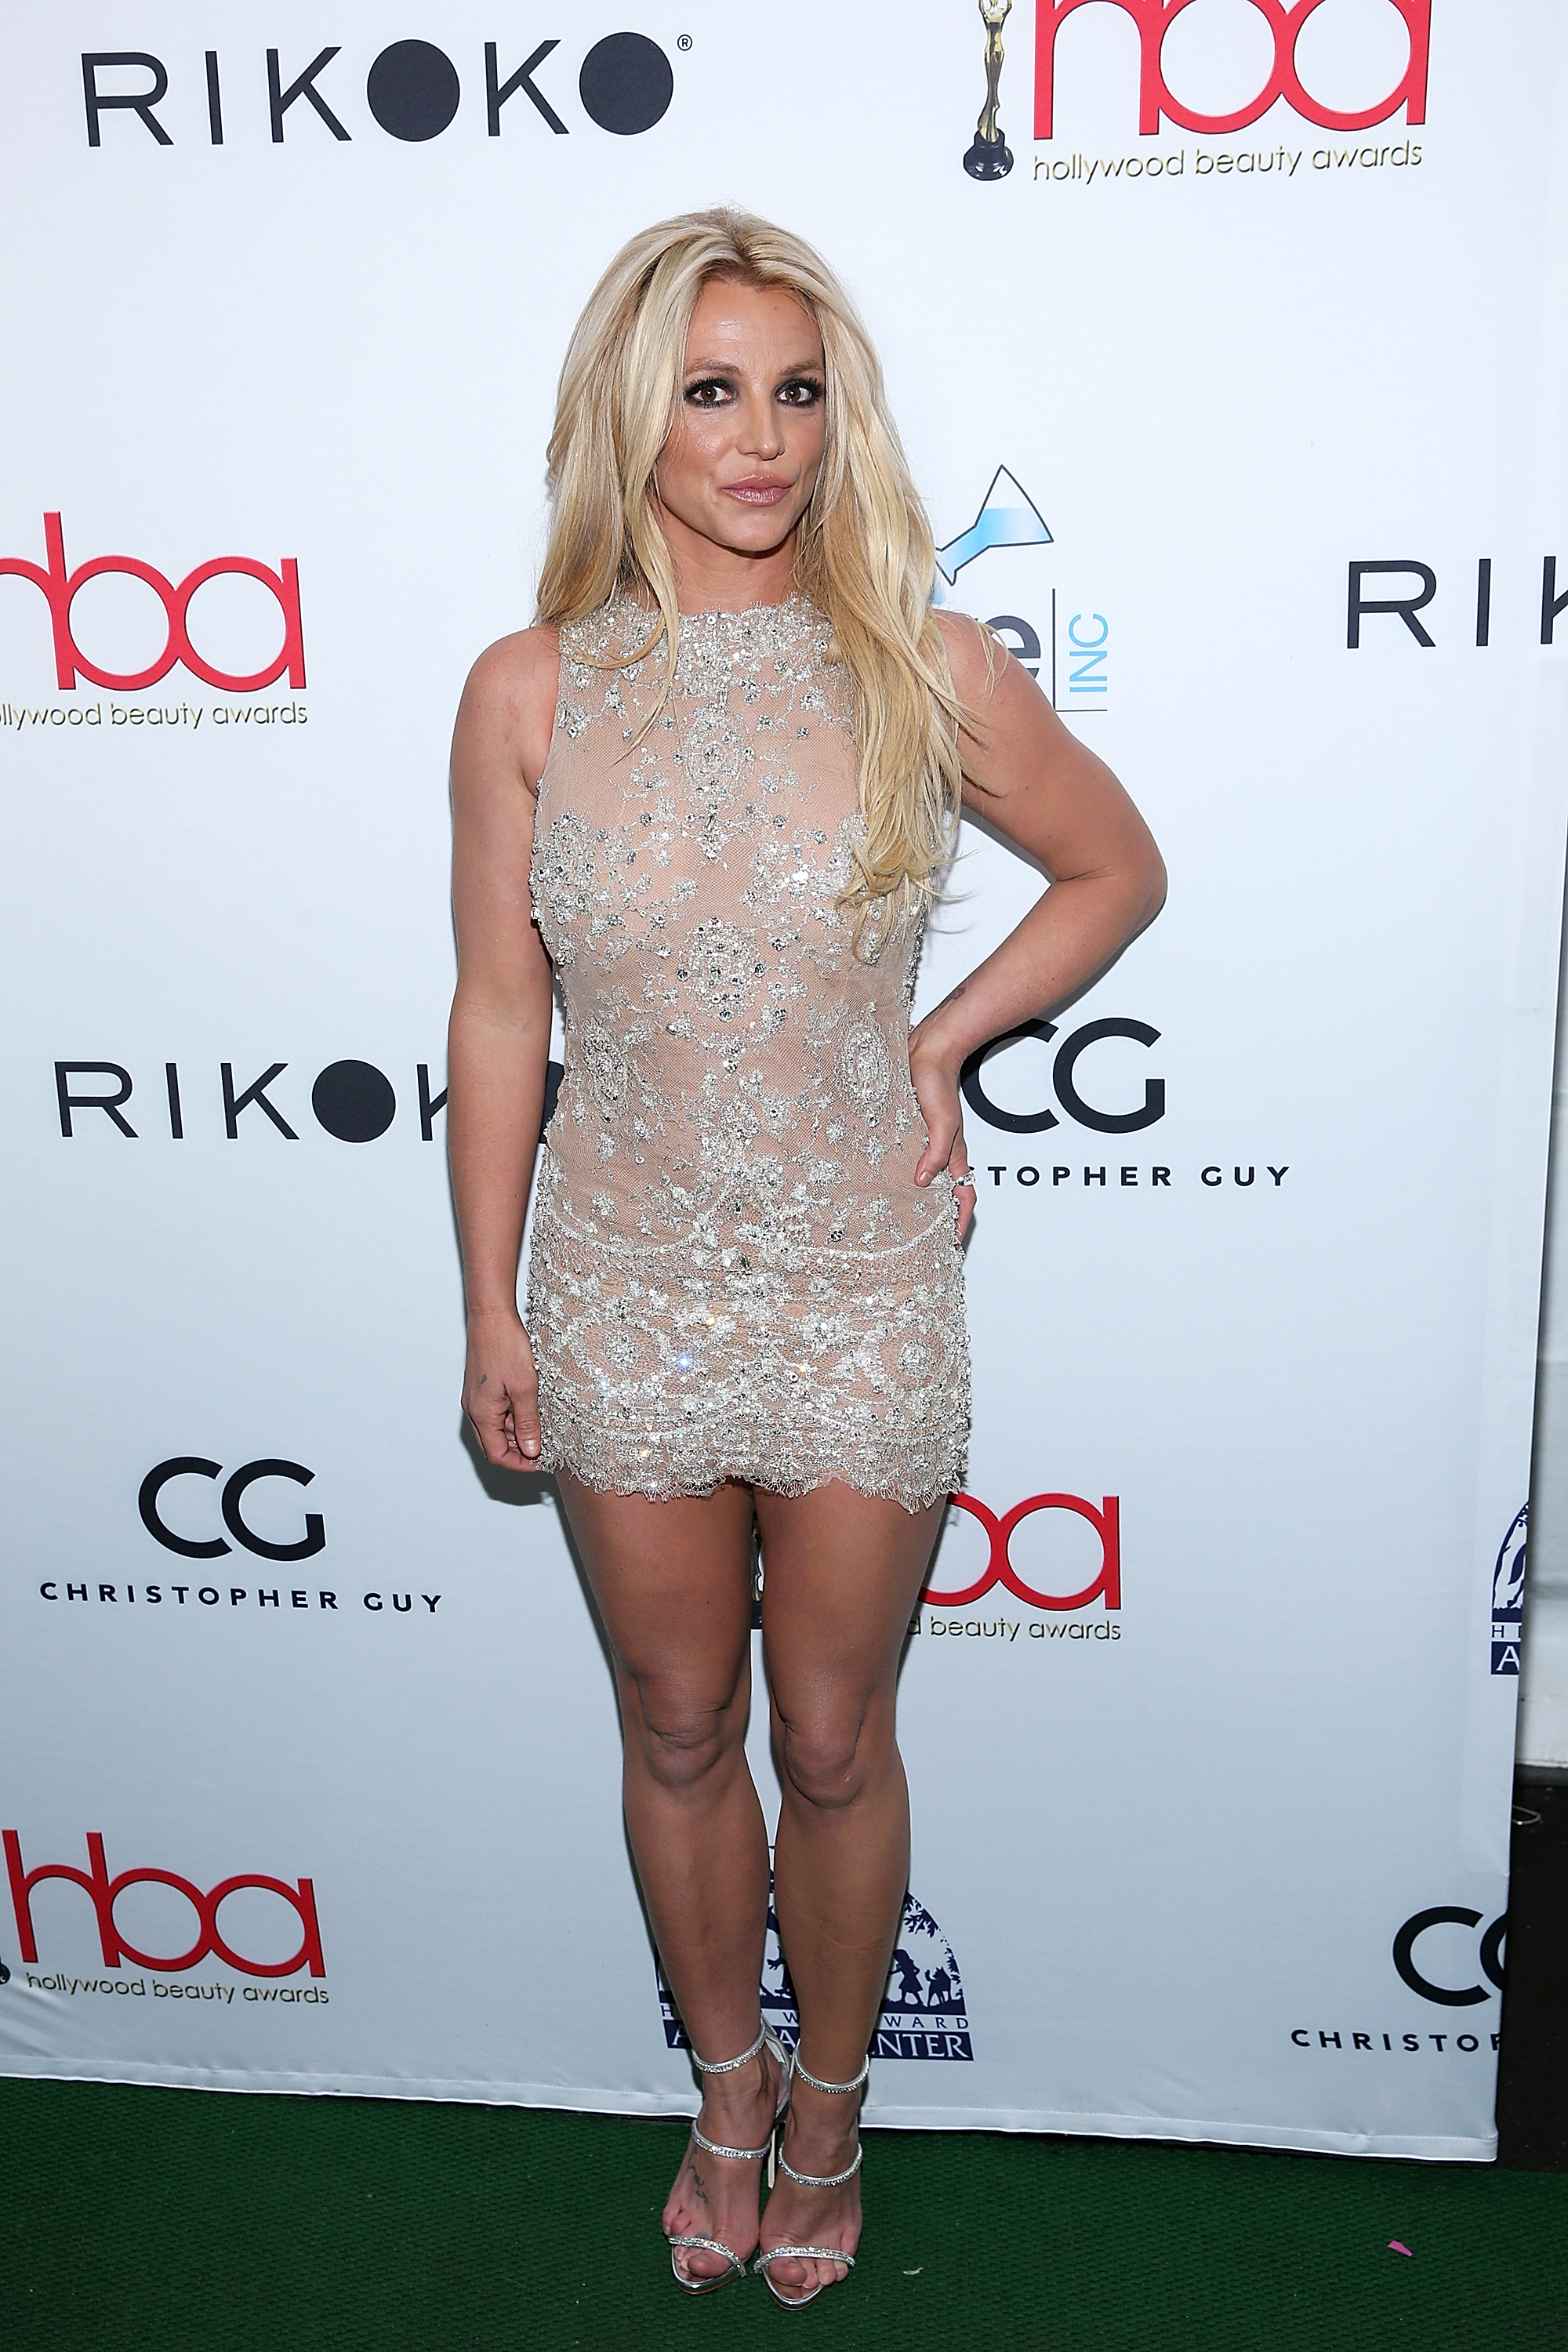 Britney-Spears-Sparkles-In-Super-Sexy-Minidress-At-Hollywood-Beauty-Awards